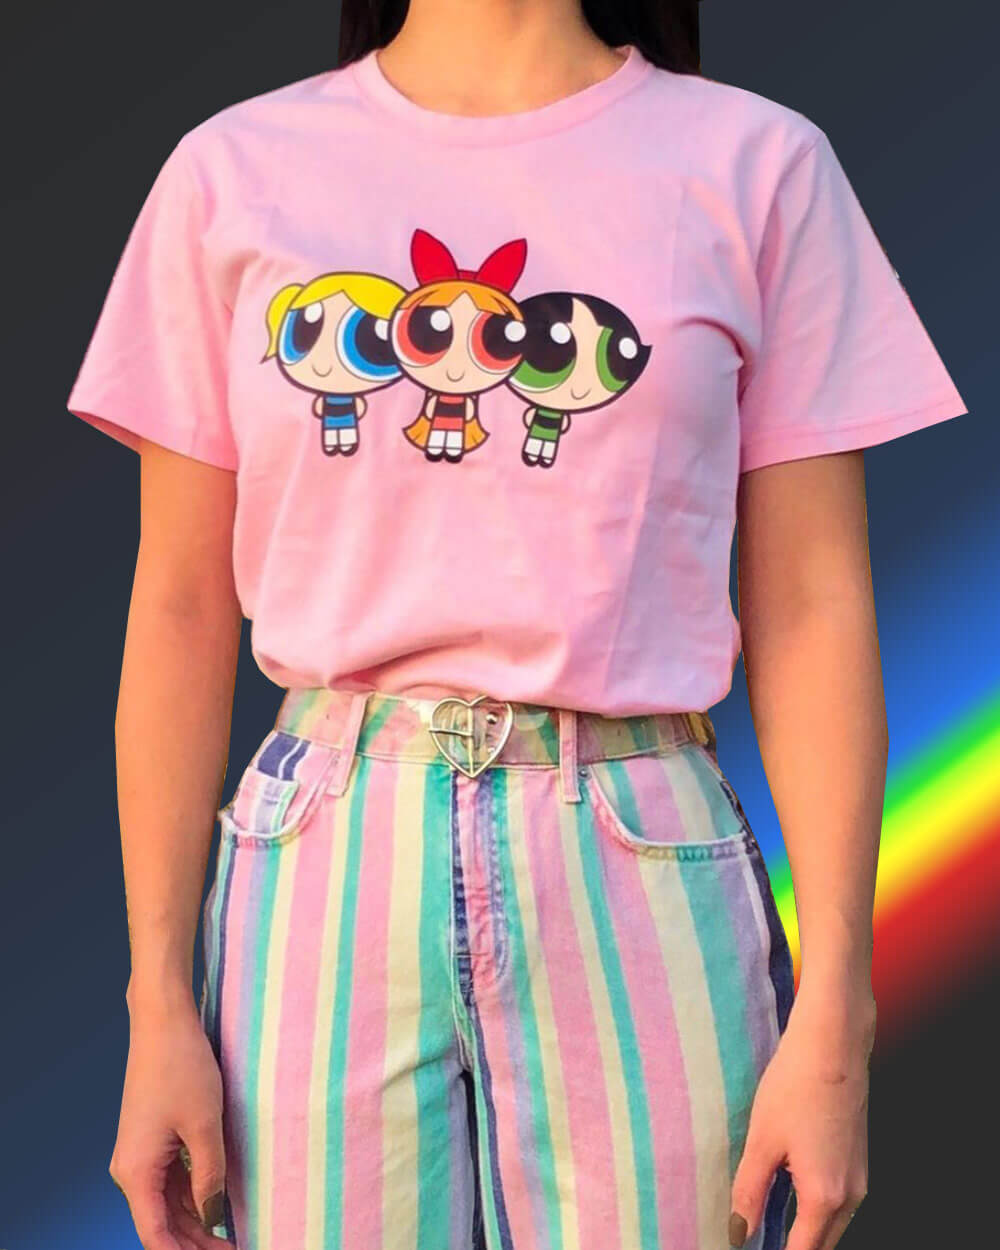 E-girl outfits oversized T-shirt